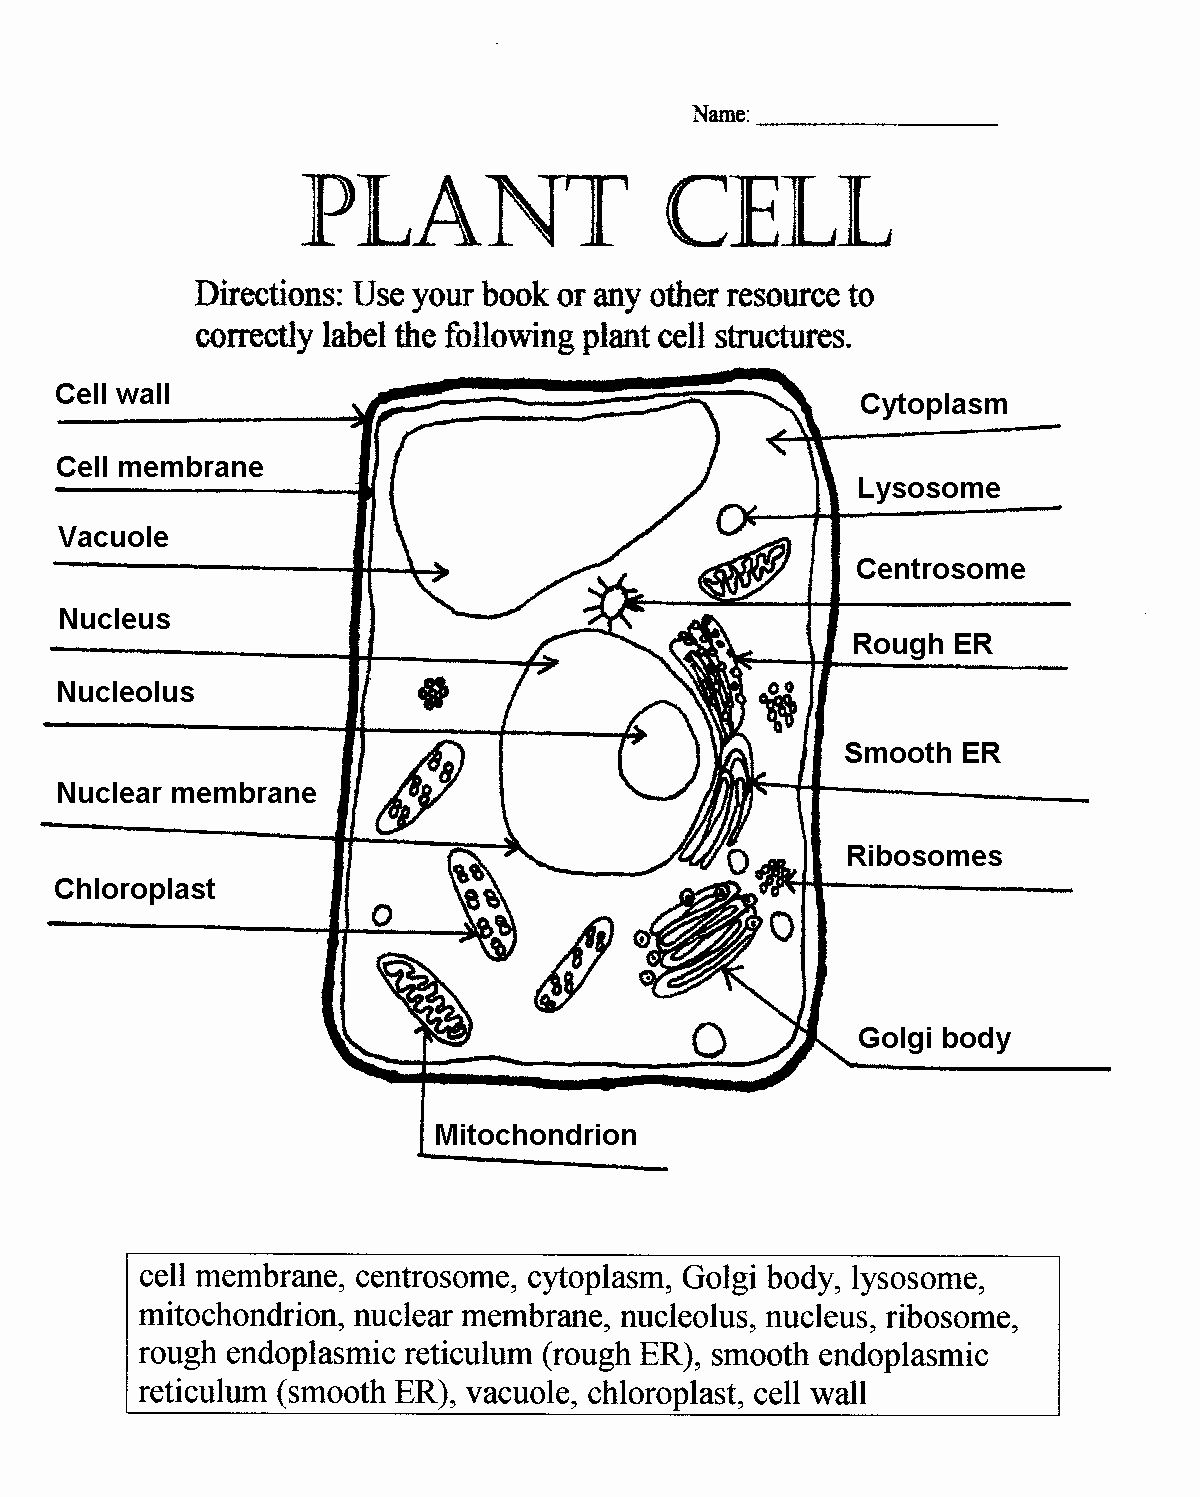 Animal And Plant Cells Worksheet Inspirational 1000 Images About Plant Animal Cells On Pinterest Che In 2020 Cells Worksheet Plant Cells Worksheet Plant Cell Diagram